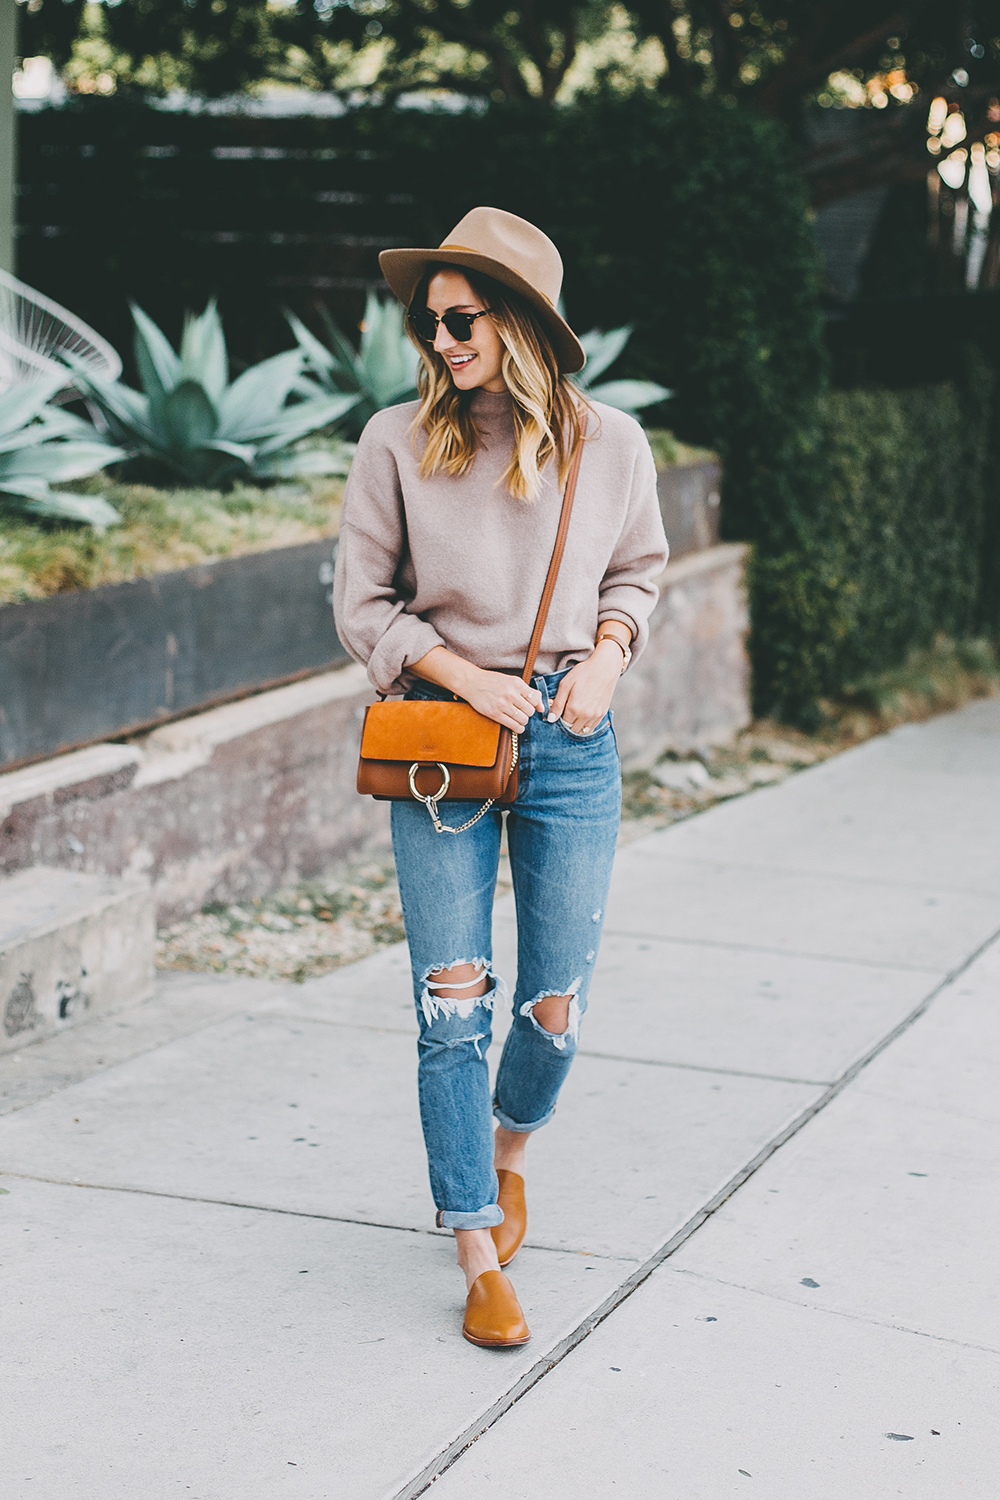 livvyland-blog-olivia-watson-mauve-mock-neck-sweater-levis-501-jeans-urban-outfitters-fortress-of-inca-tan-leather-slides-6